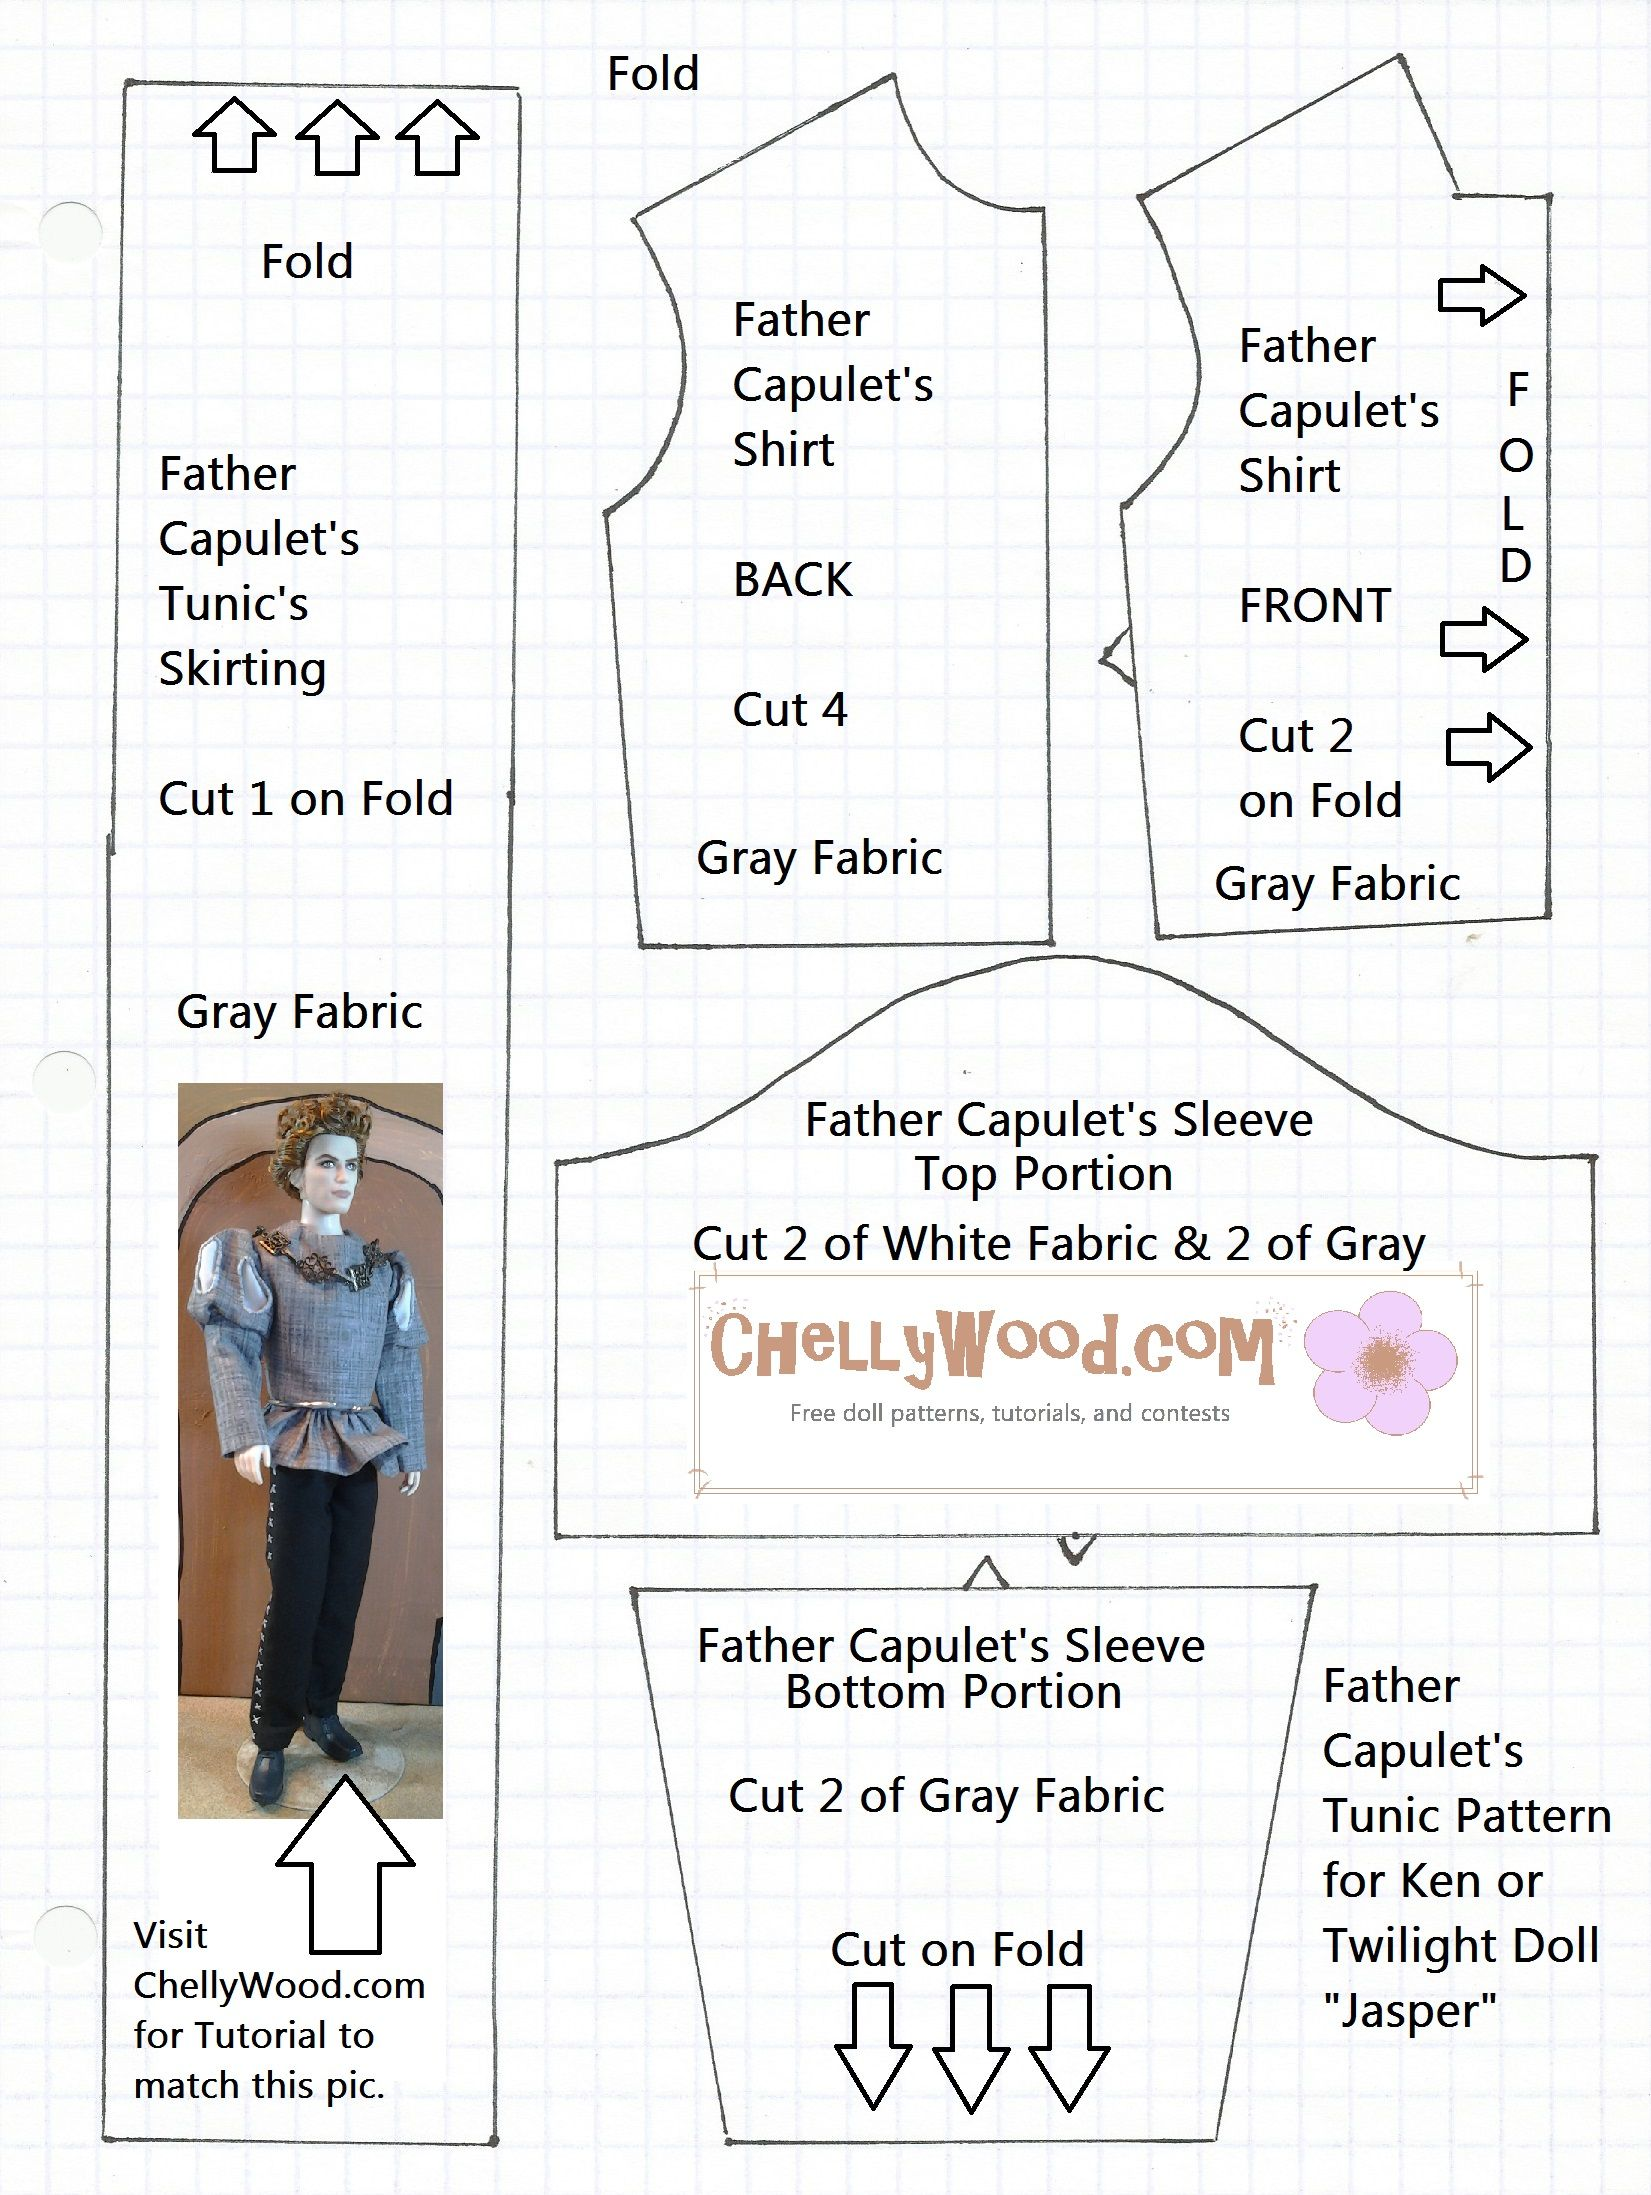 Superb image inside free printable ken doll clothes patterns